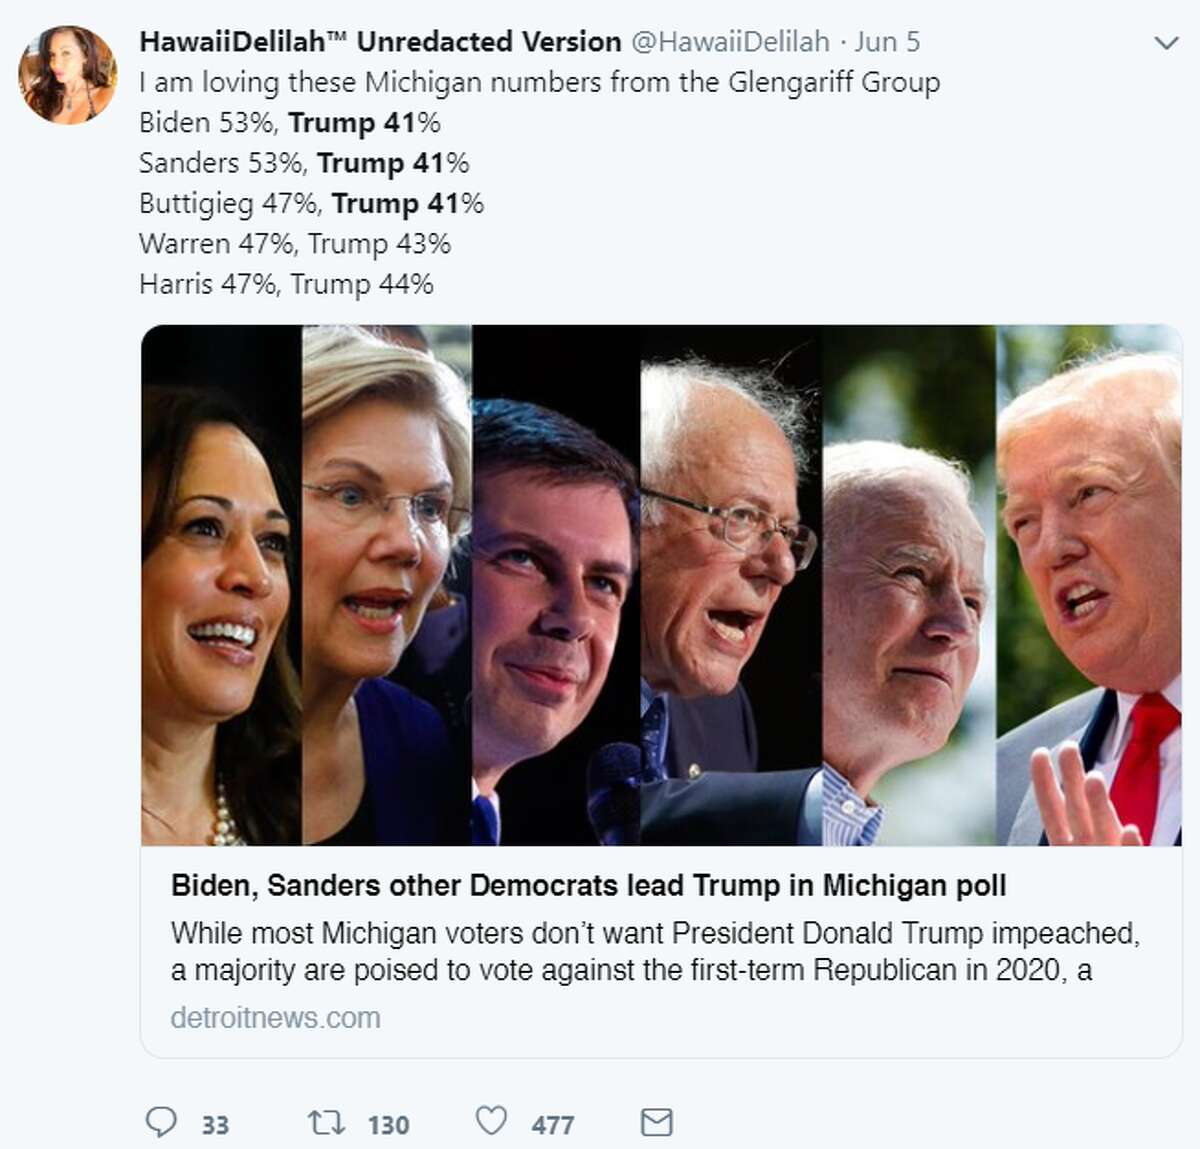 Trump polling as low as 41 percent against 6 Democratic challengersTwitter had fun after a new poll showed President Donald Trump losing to six Democratic challengers in the 2020 election, with Trump polling as low as 41 percent.